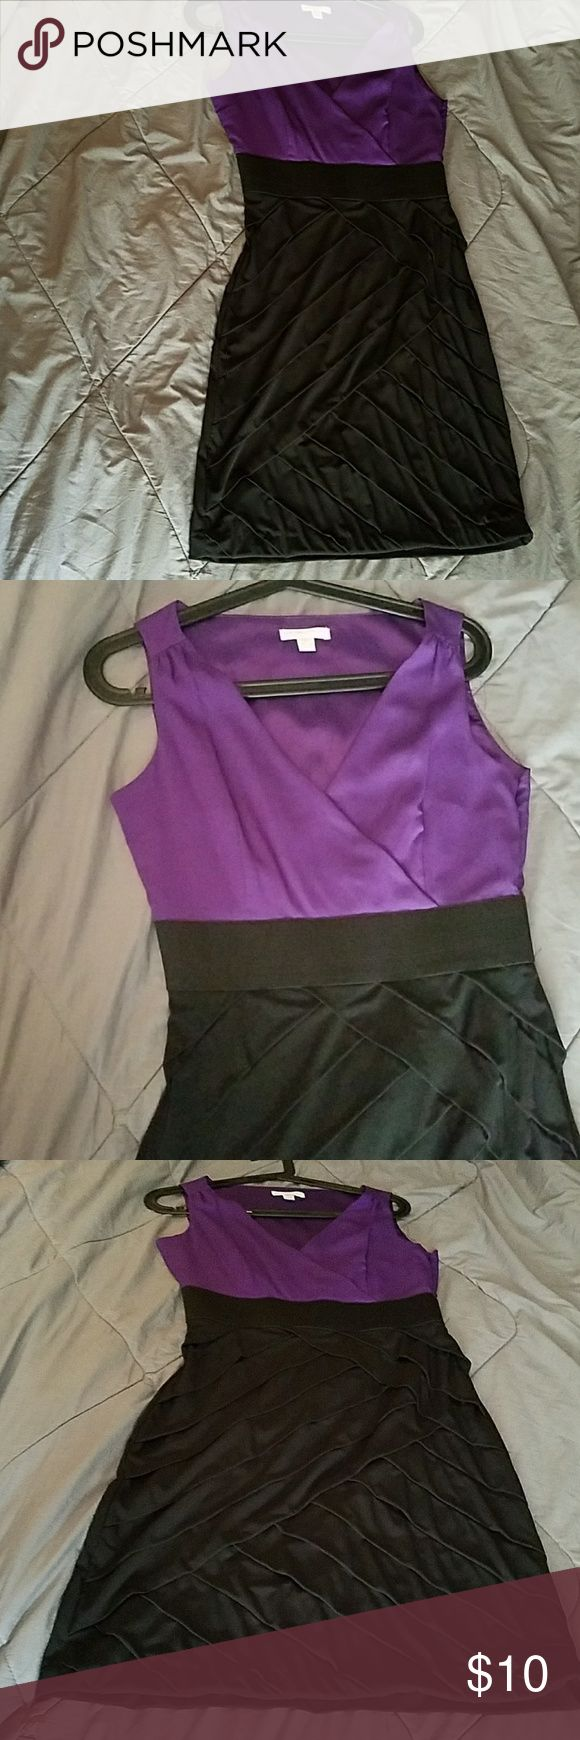 V-neck purple and black cocktail dress Worn once. Great for a night out with the ladies! New York & Company Dresses Midi